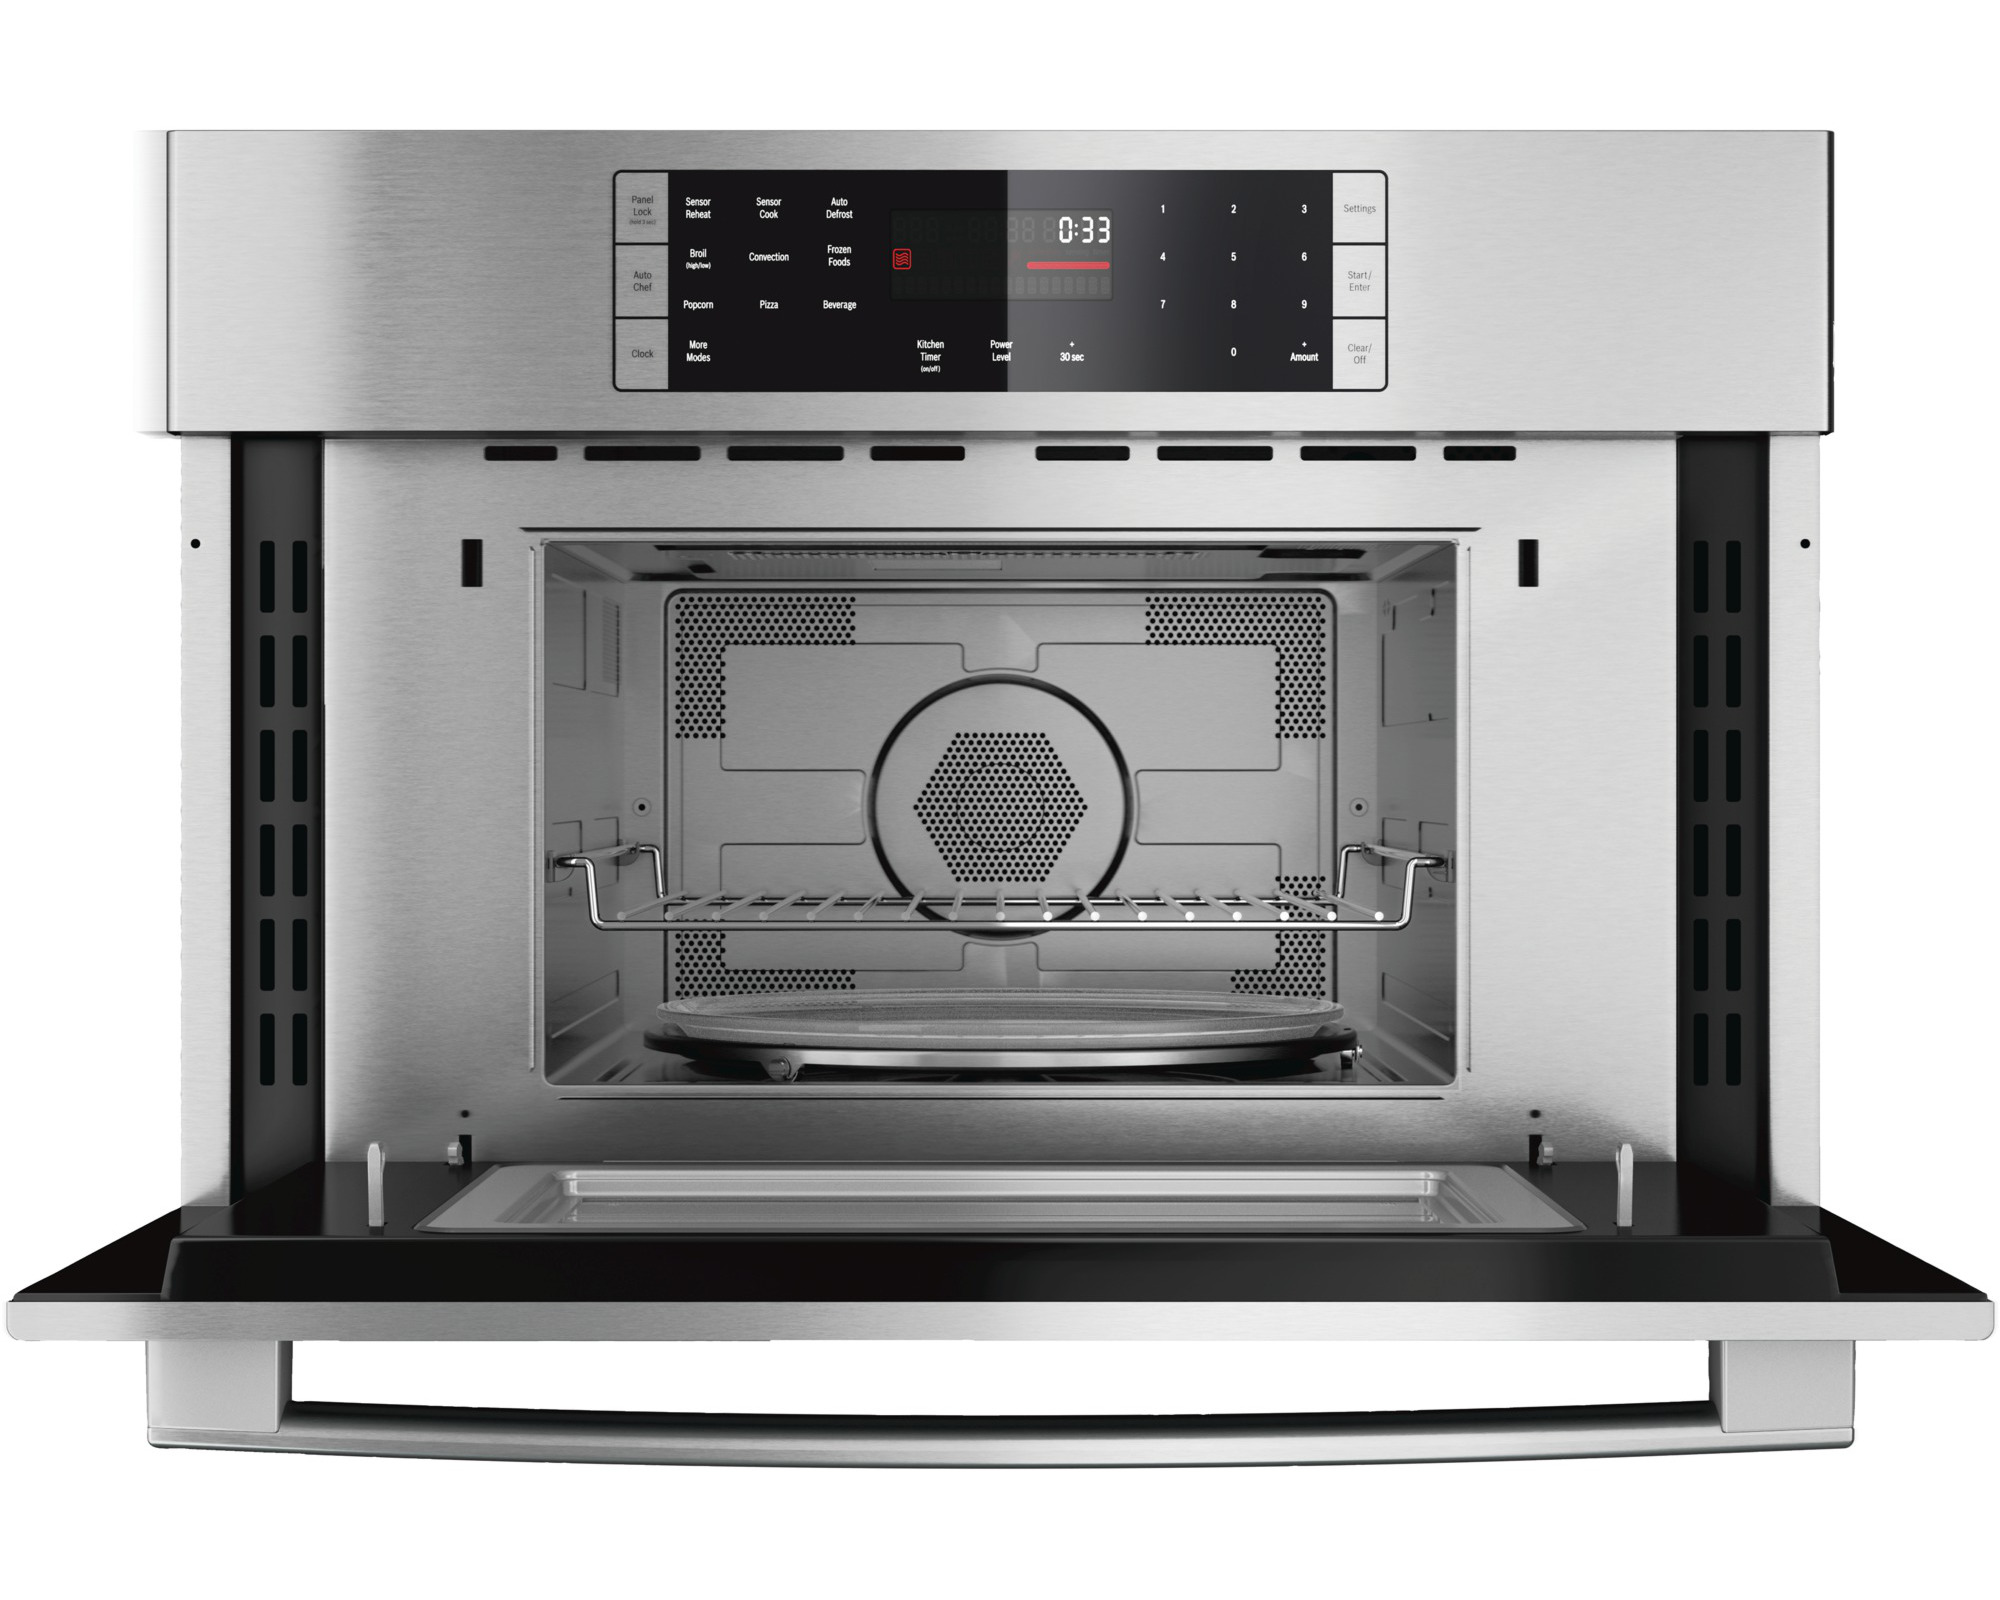 Bosch HMC80151UC 1.6 cu. ft. 800 Series Speed Microwave Oven - Stainless Steel